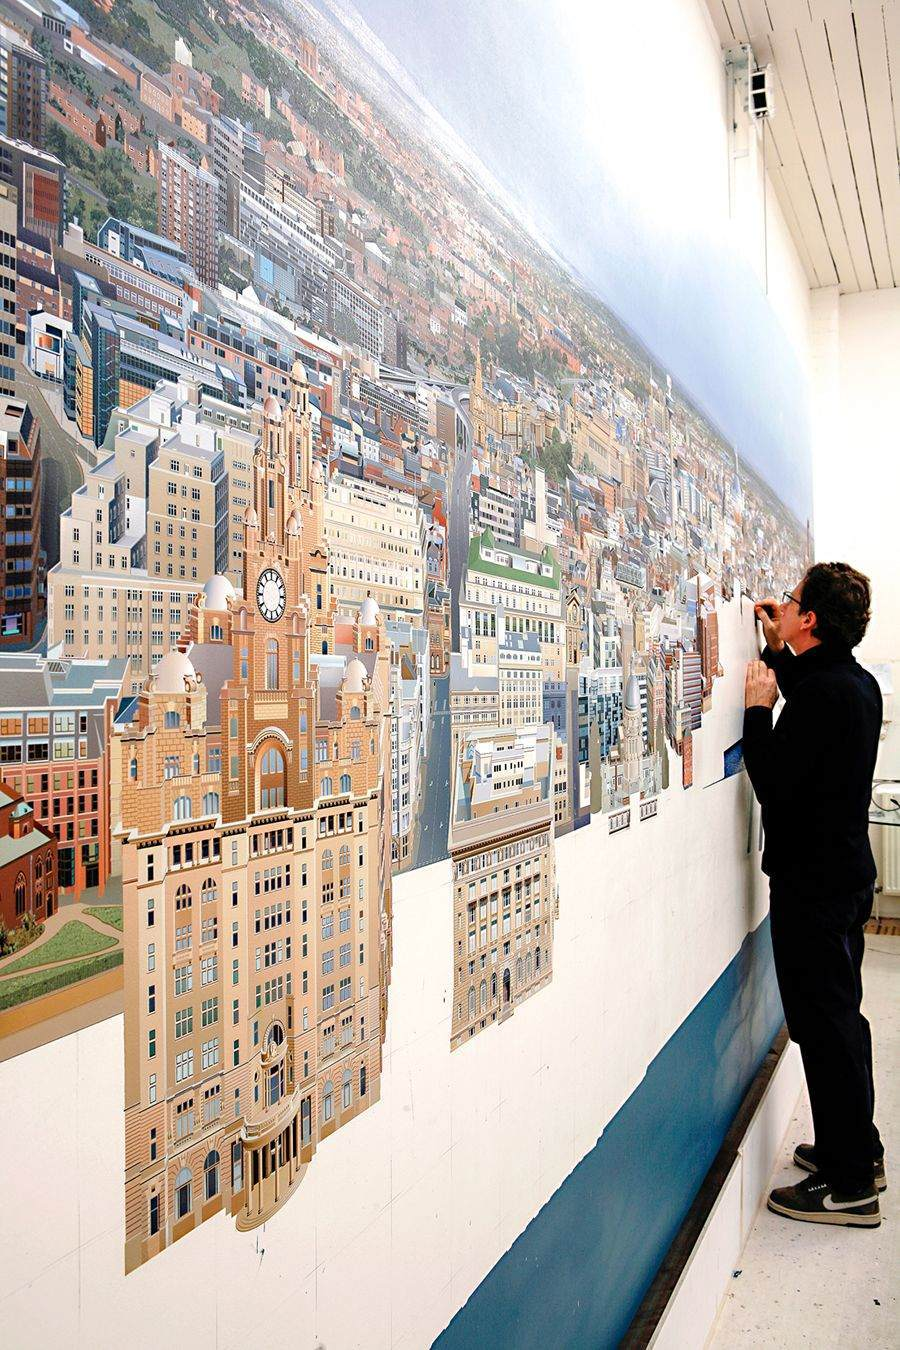 s1_ben_johnson_the_liverpool_cityscape_progress_yatzer_0.jpg